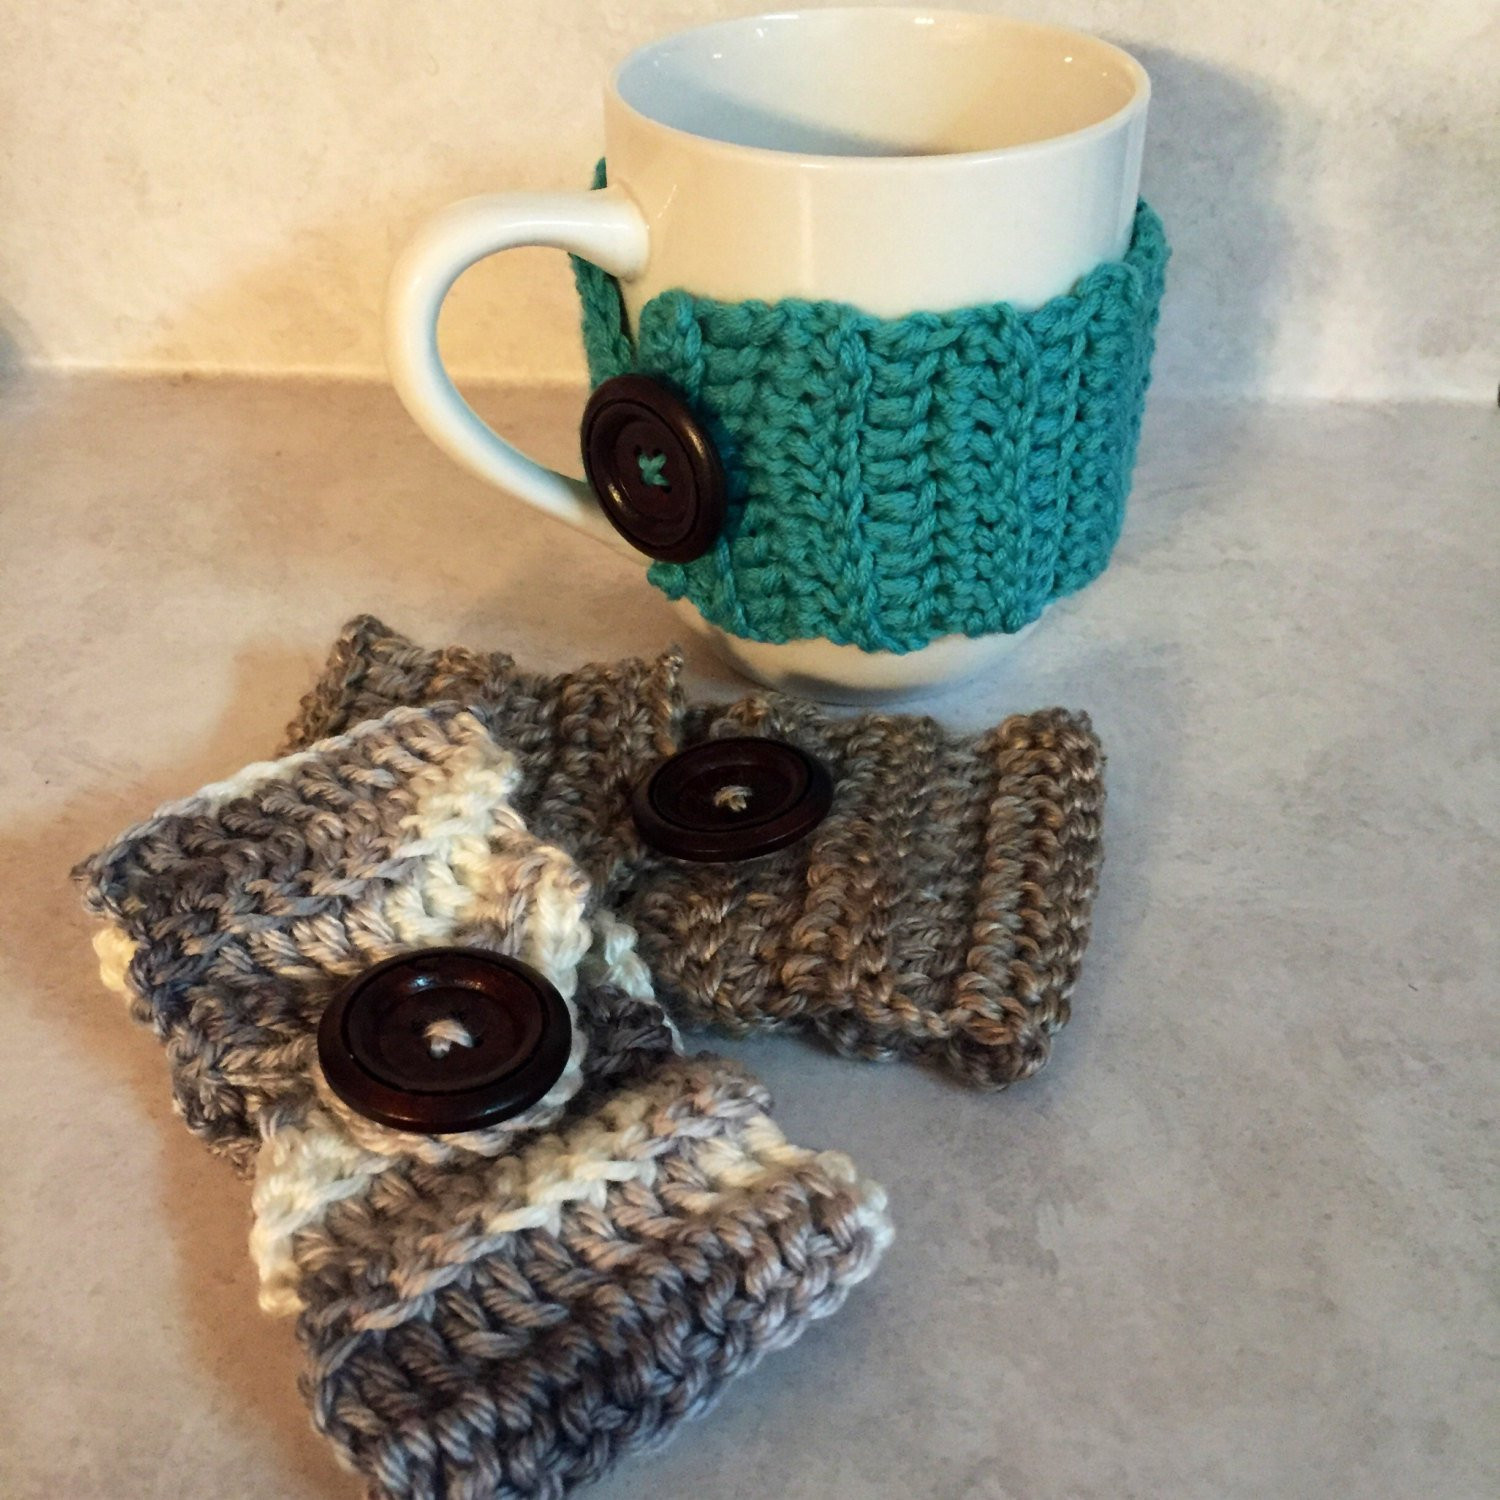 Crochet Coffee Cup Cozy New Crochet Tea Cozy Coffee Cup Sleeve Coffee Sleeve Mug Cozy Of Crochet Coffee Cup Cozy Inspirational Crochet Class Beginning Crochet Sparkleez Crystles